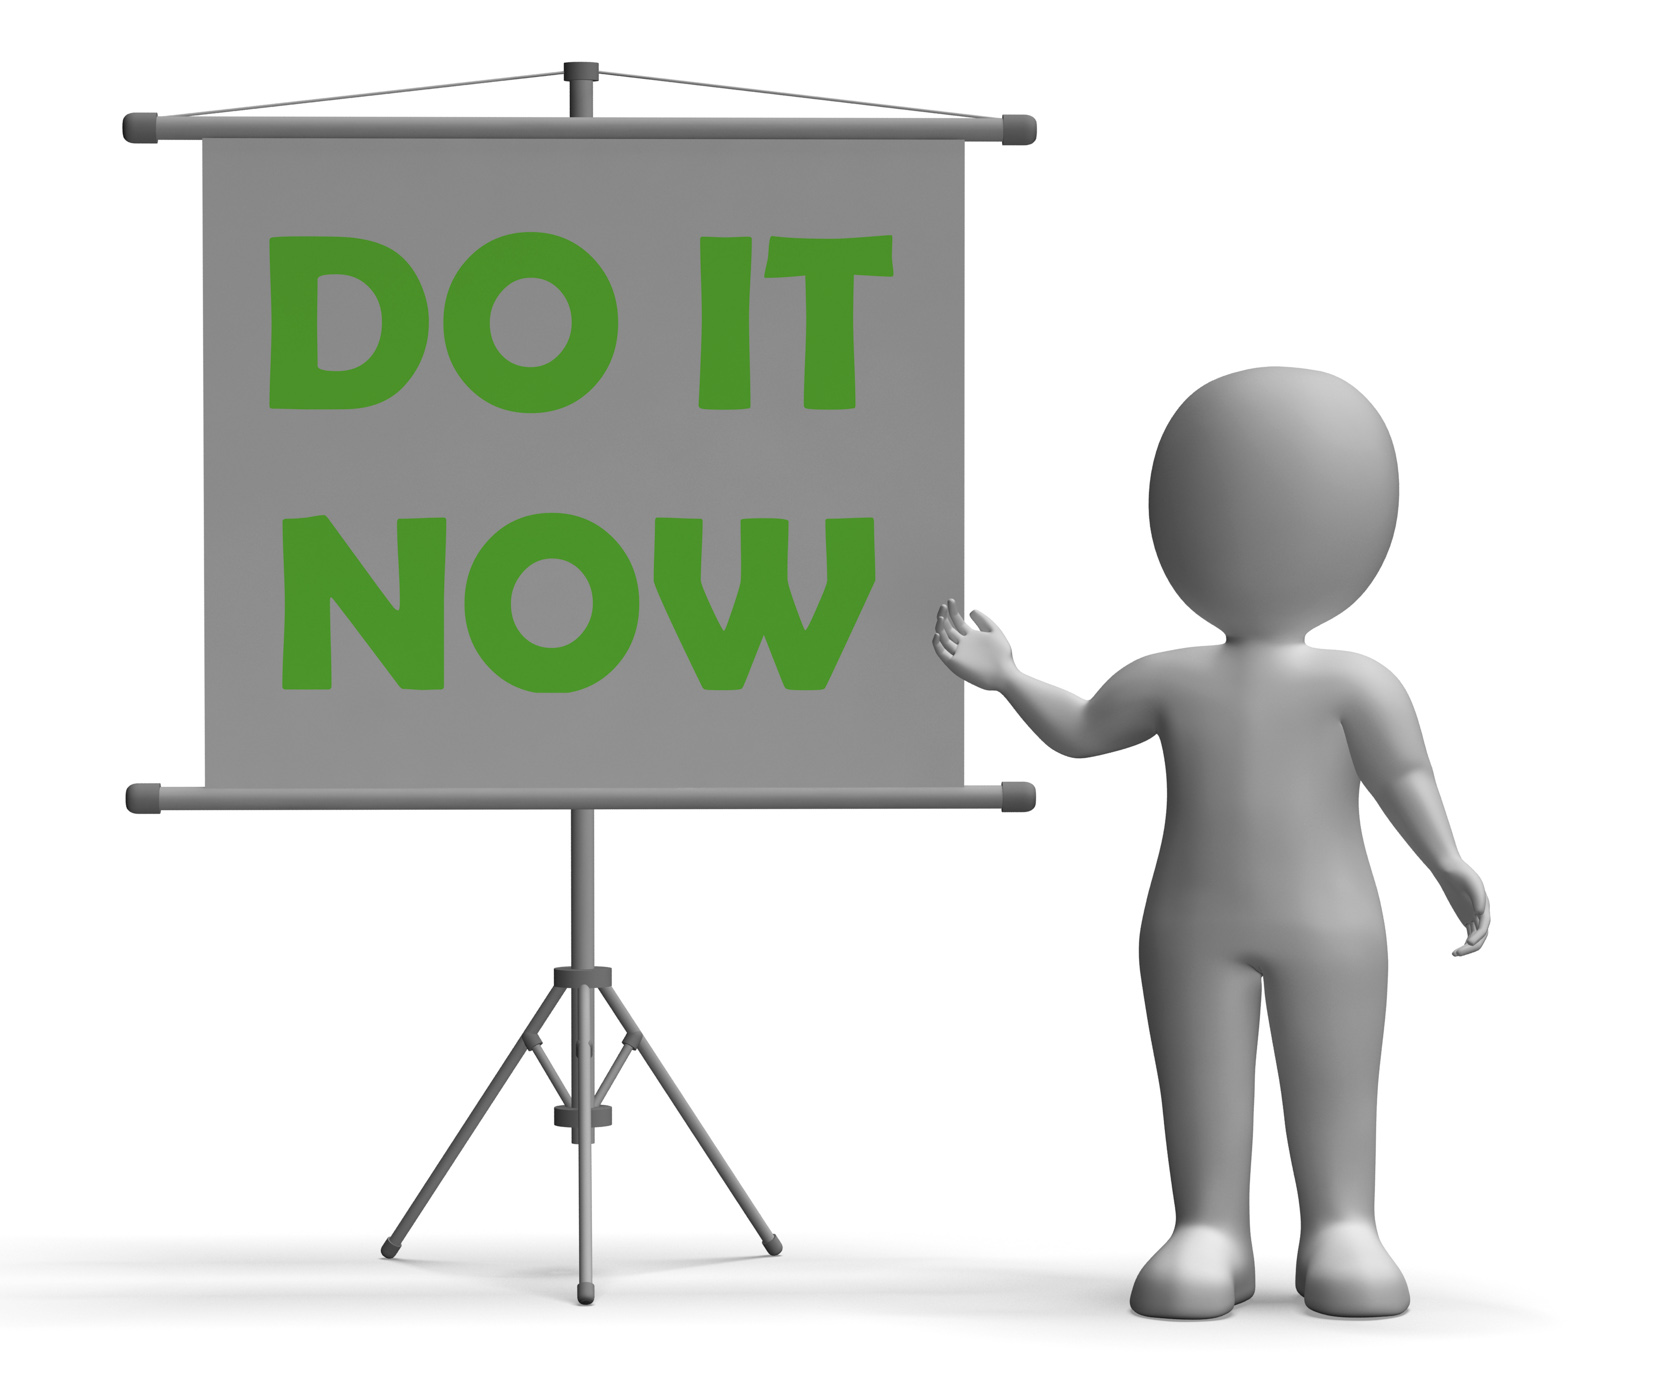 Do It Now Board Shows Giving Advice, Inspiration, Urgency, Reminder, Remind, HQ Photo